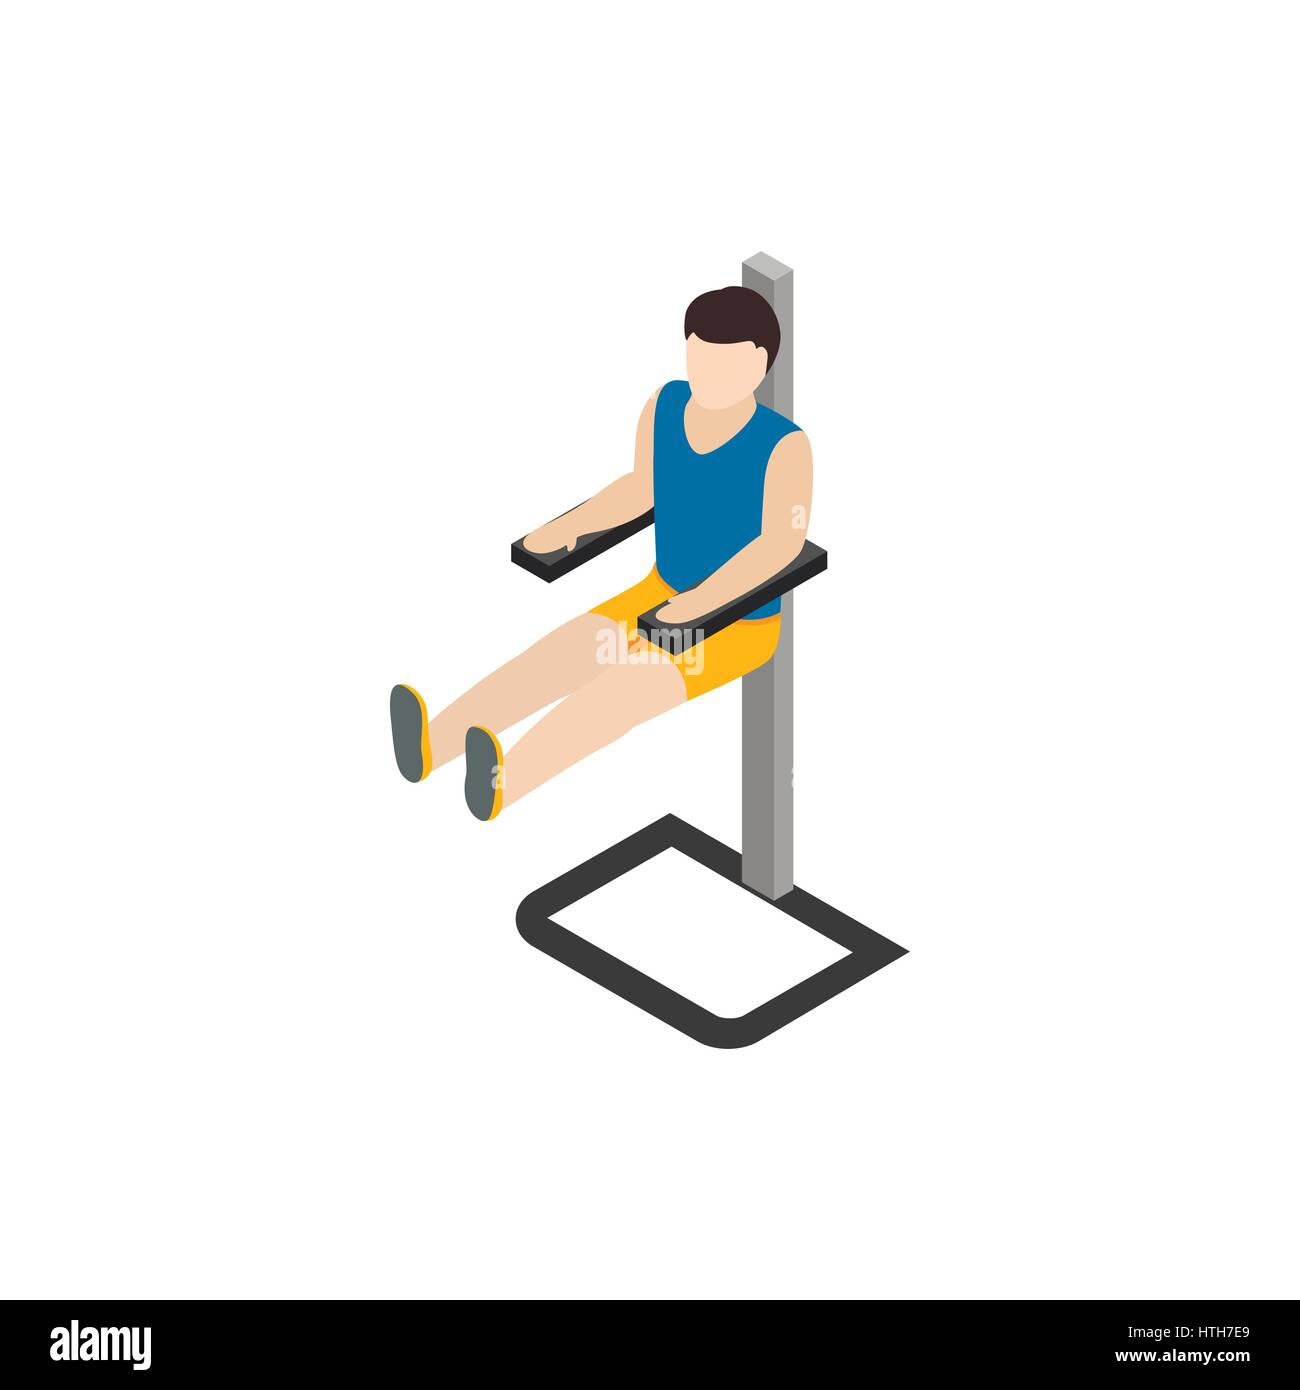 Man doing workout in gym icon, isometric 3d style - Stock Image